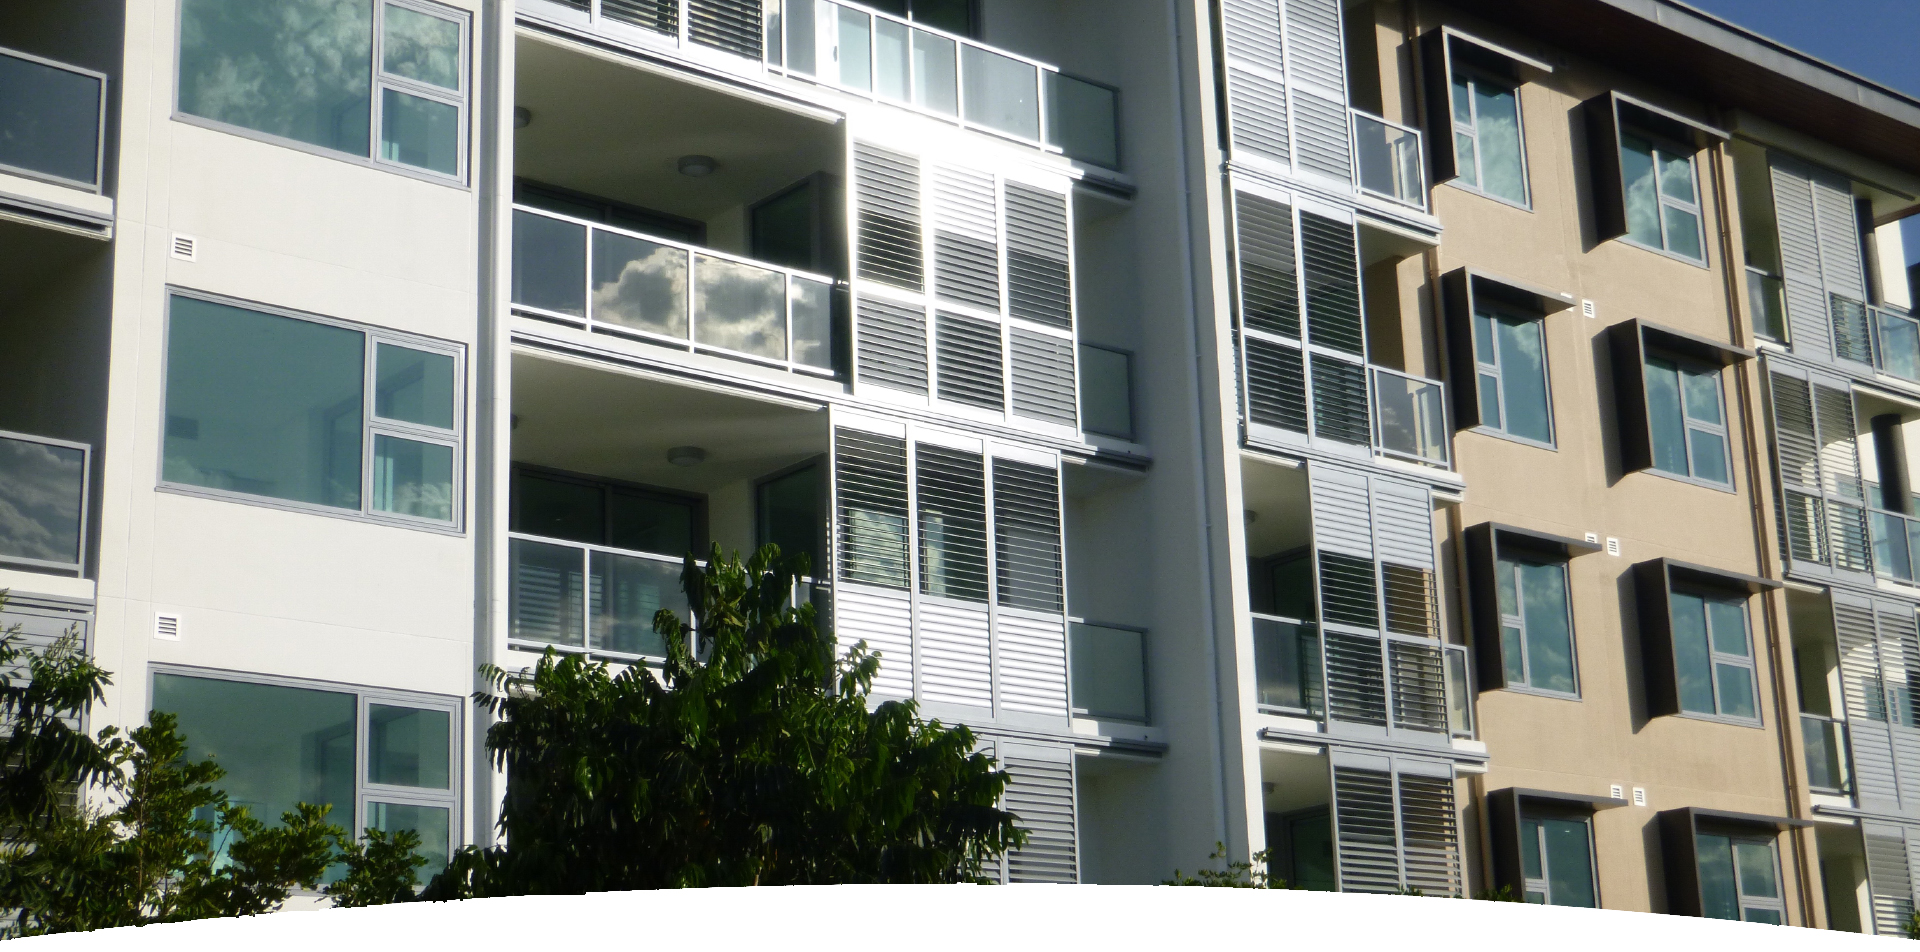 Aluminium Balustrades Krypton Louvre System Mar 20 - Louvres Explained - What They Are And The Different Types Of Louvres